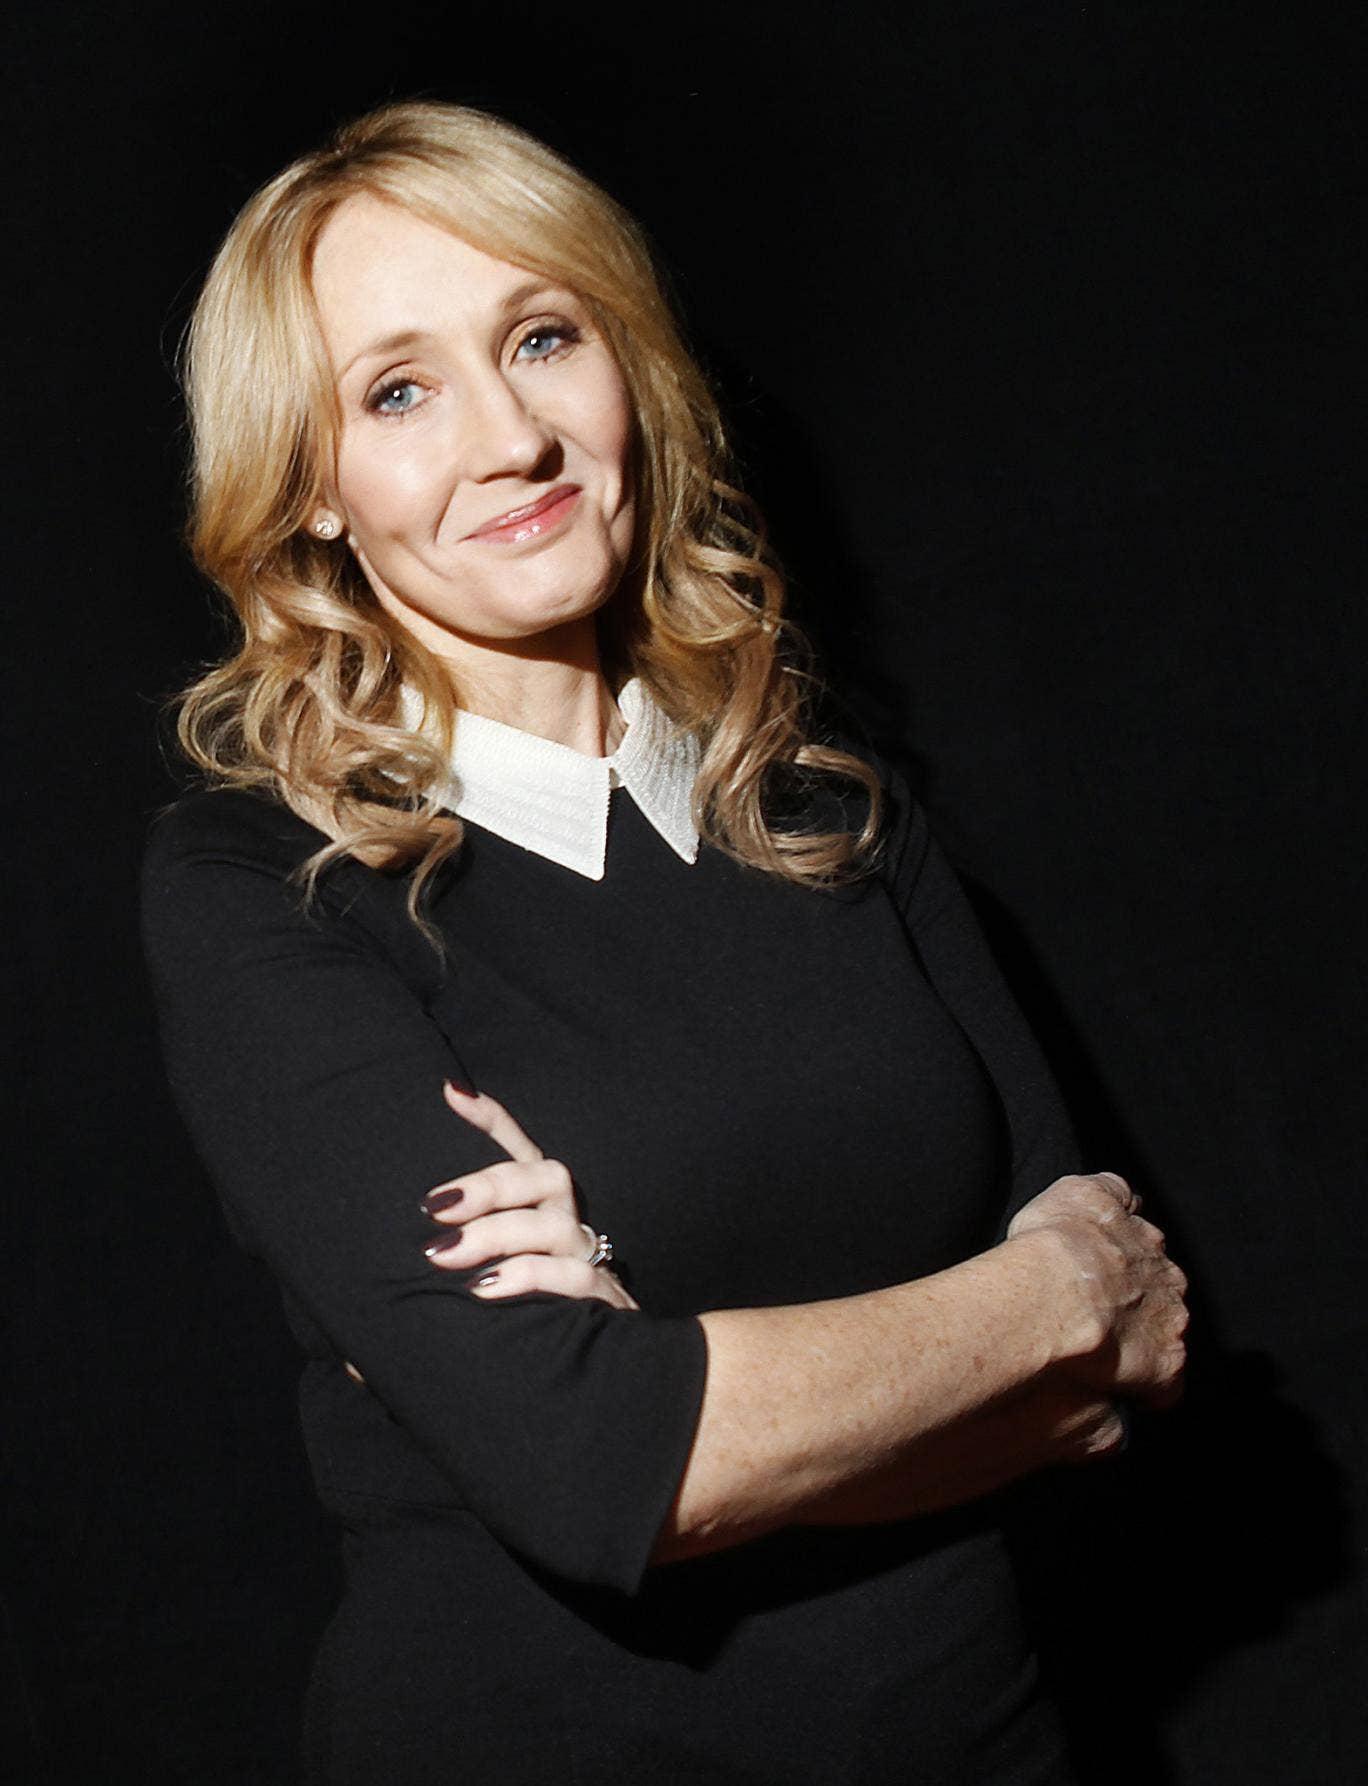 JK Rowling has opened up about her experiences as a single mother on benefits